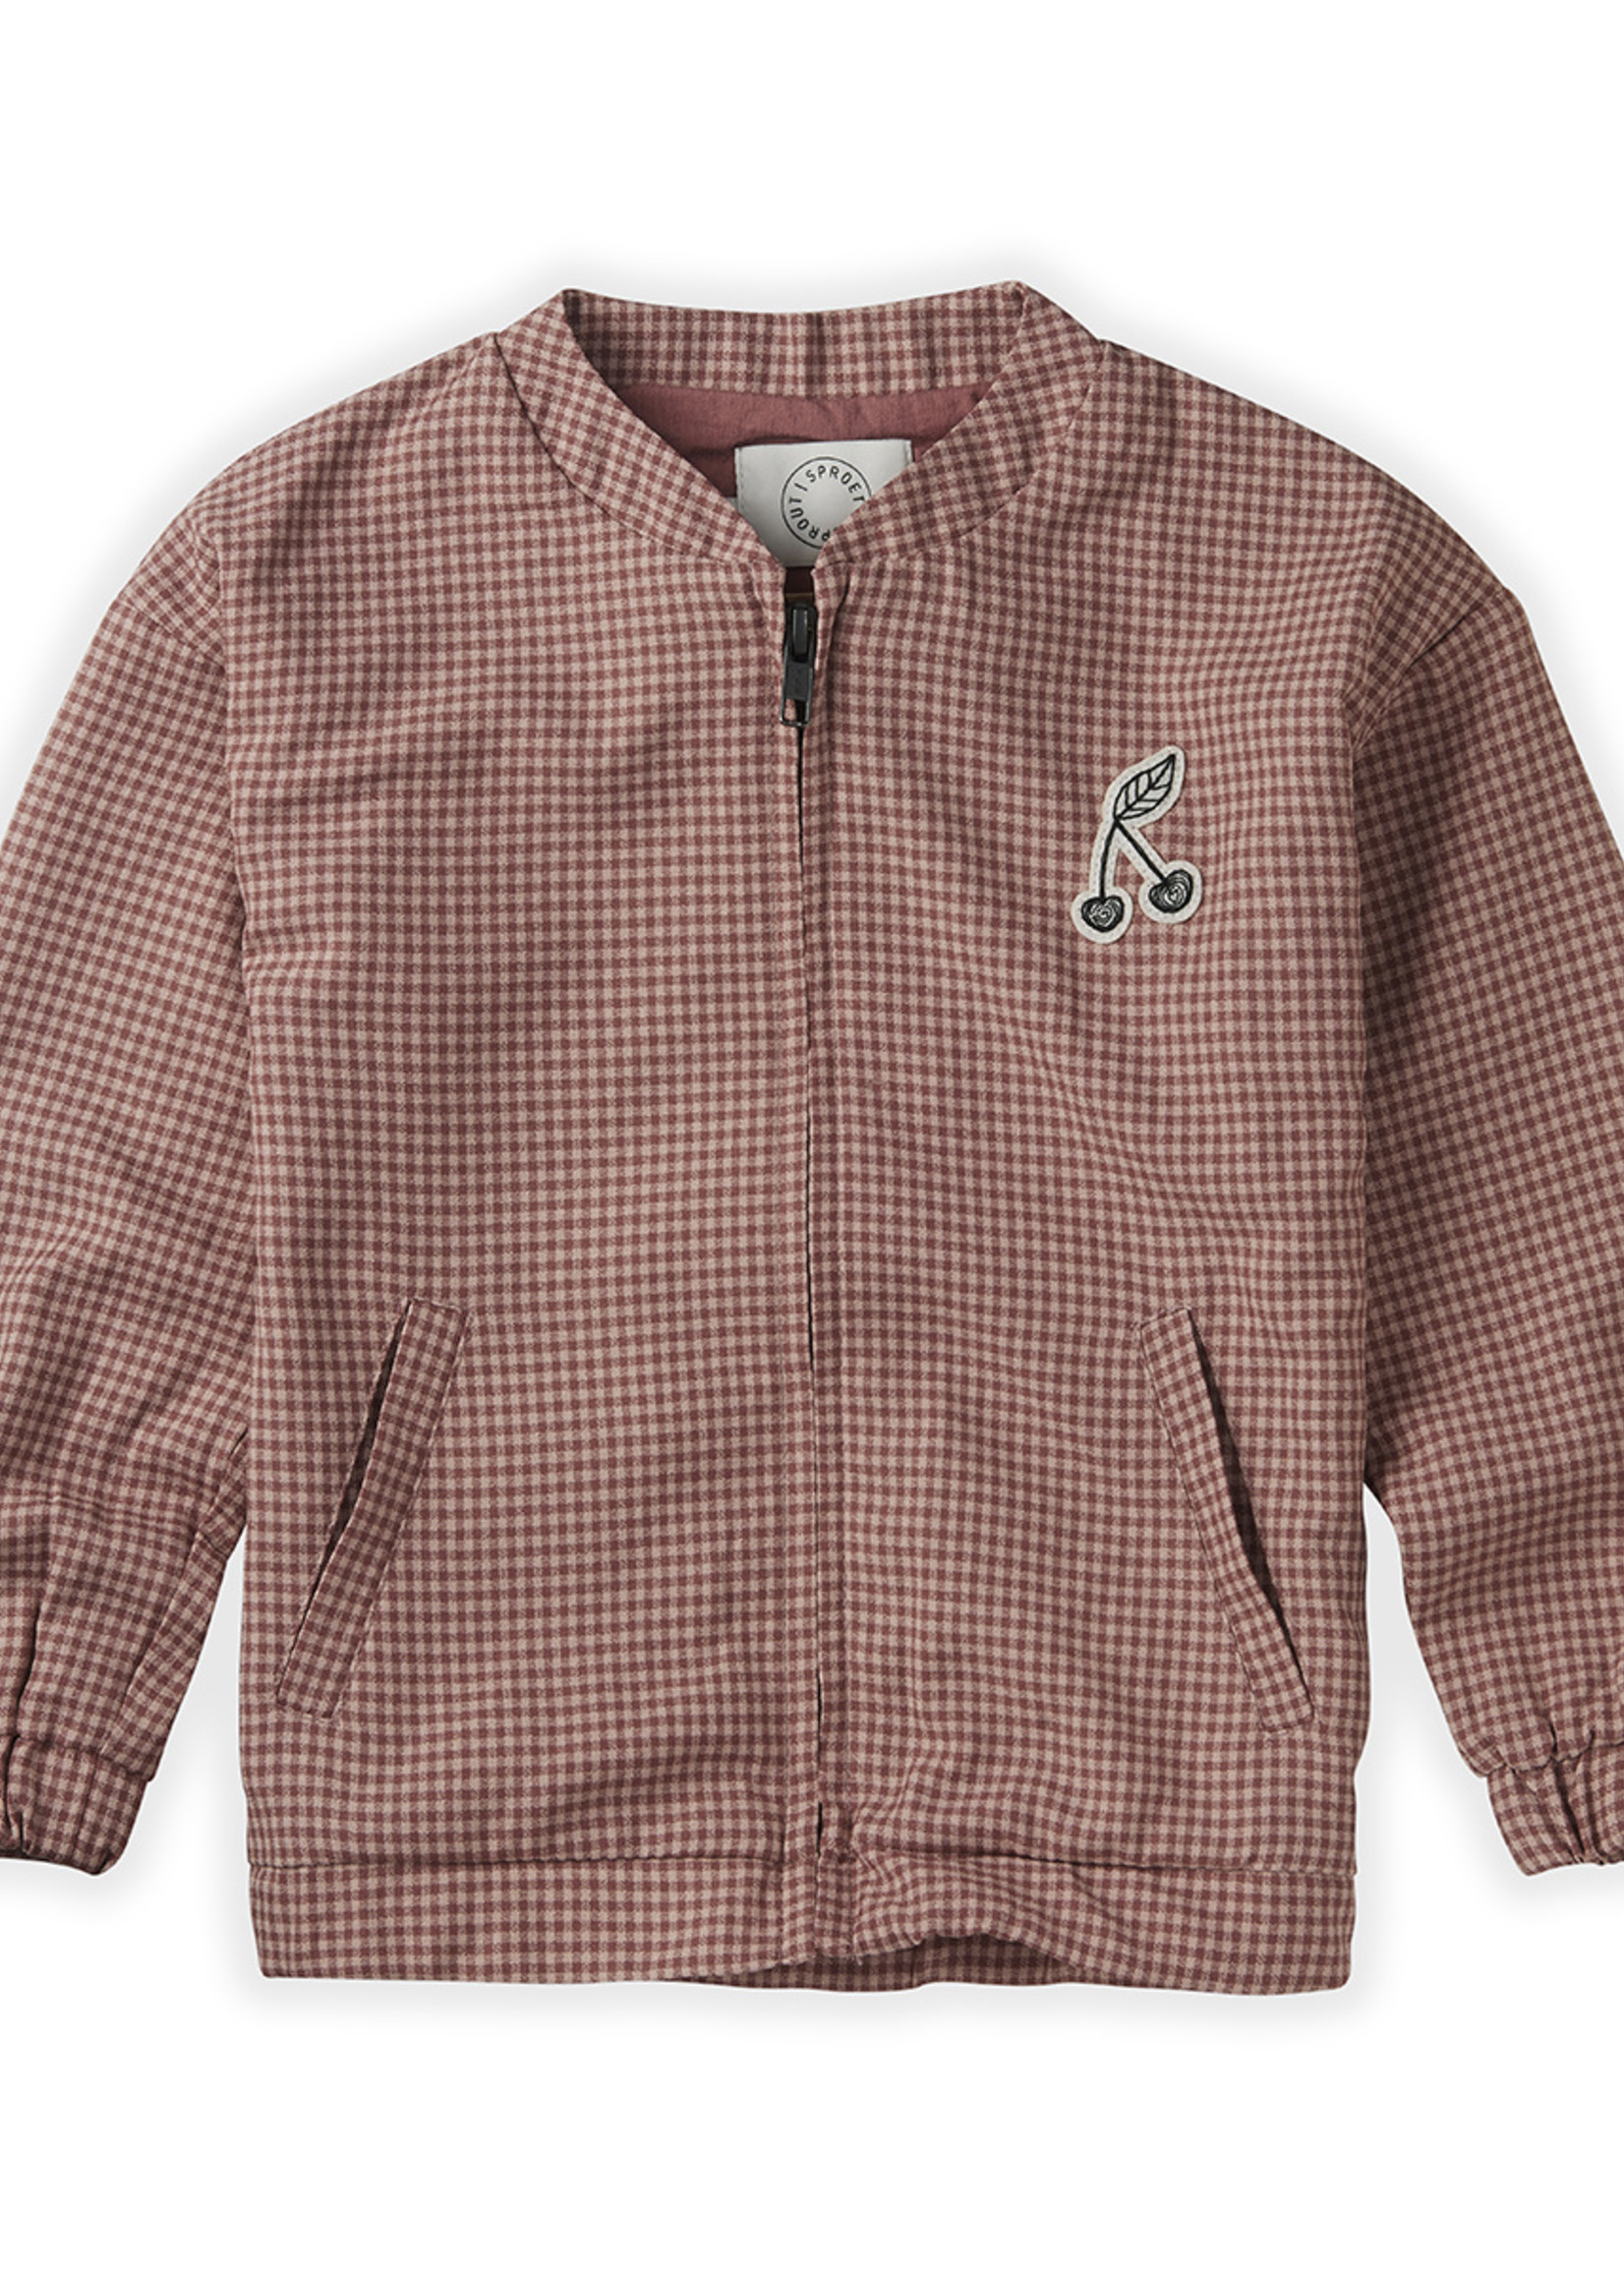 Sproet & Sprout SS - Jacket Mini Check